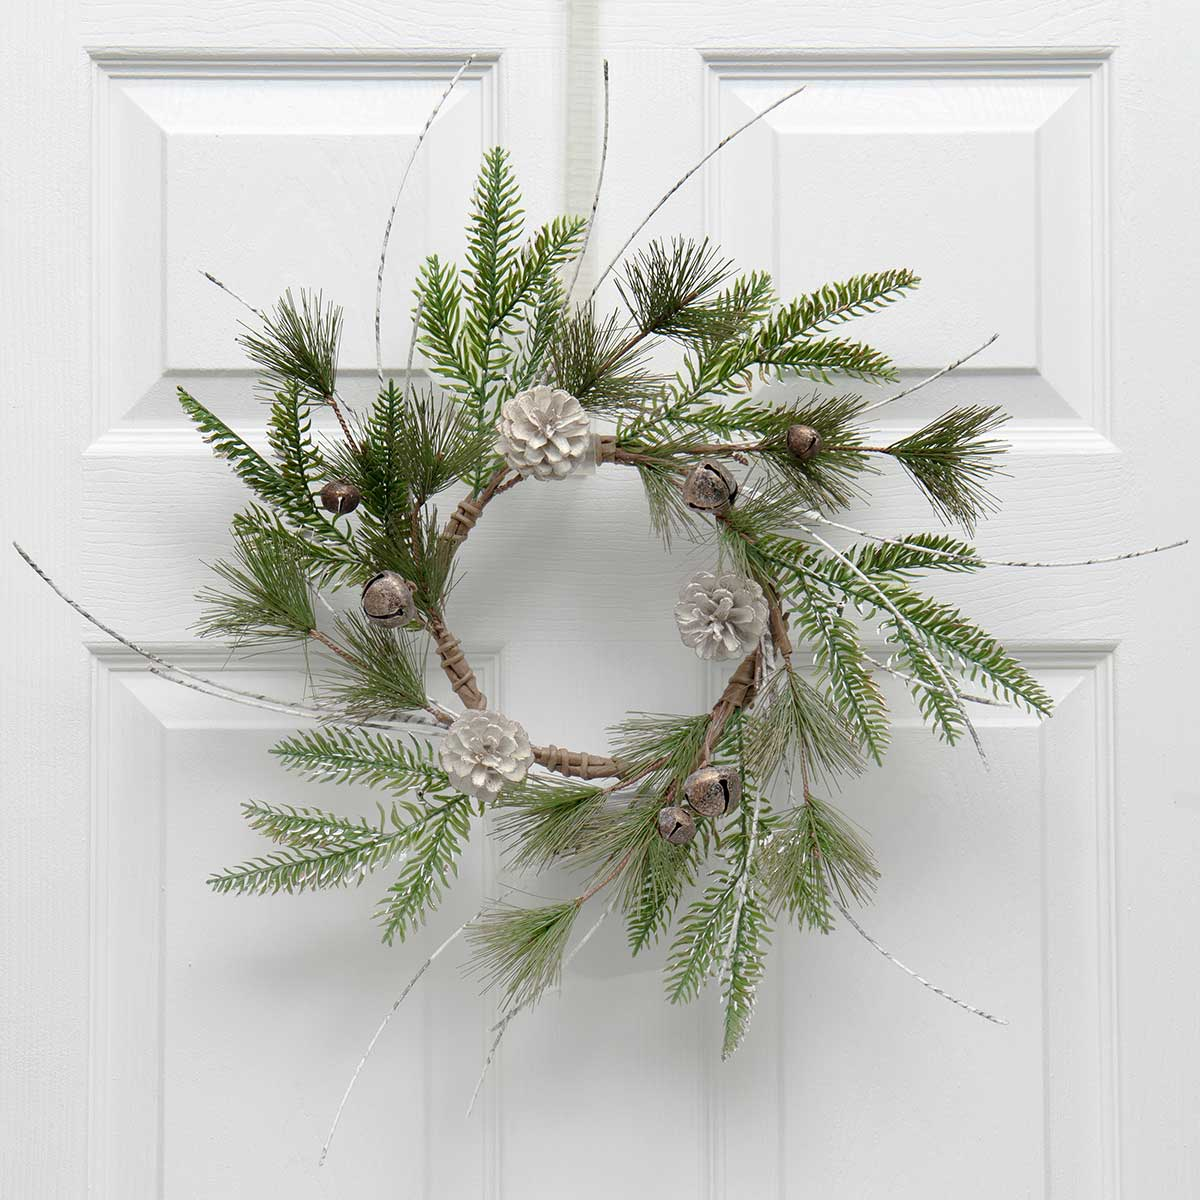 BIRCH & PINE MINI WREATH WITH JINGLE